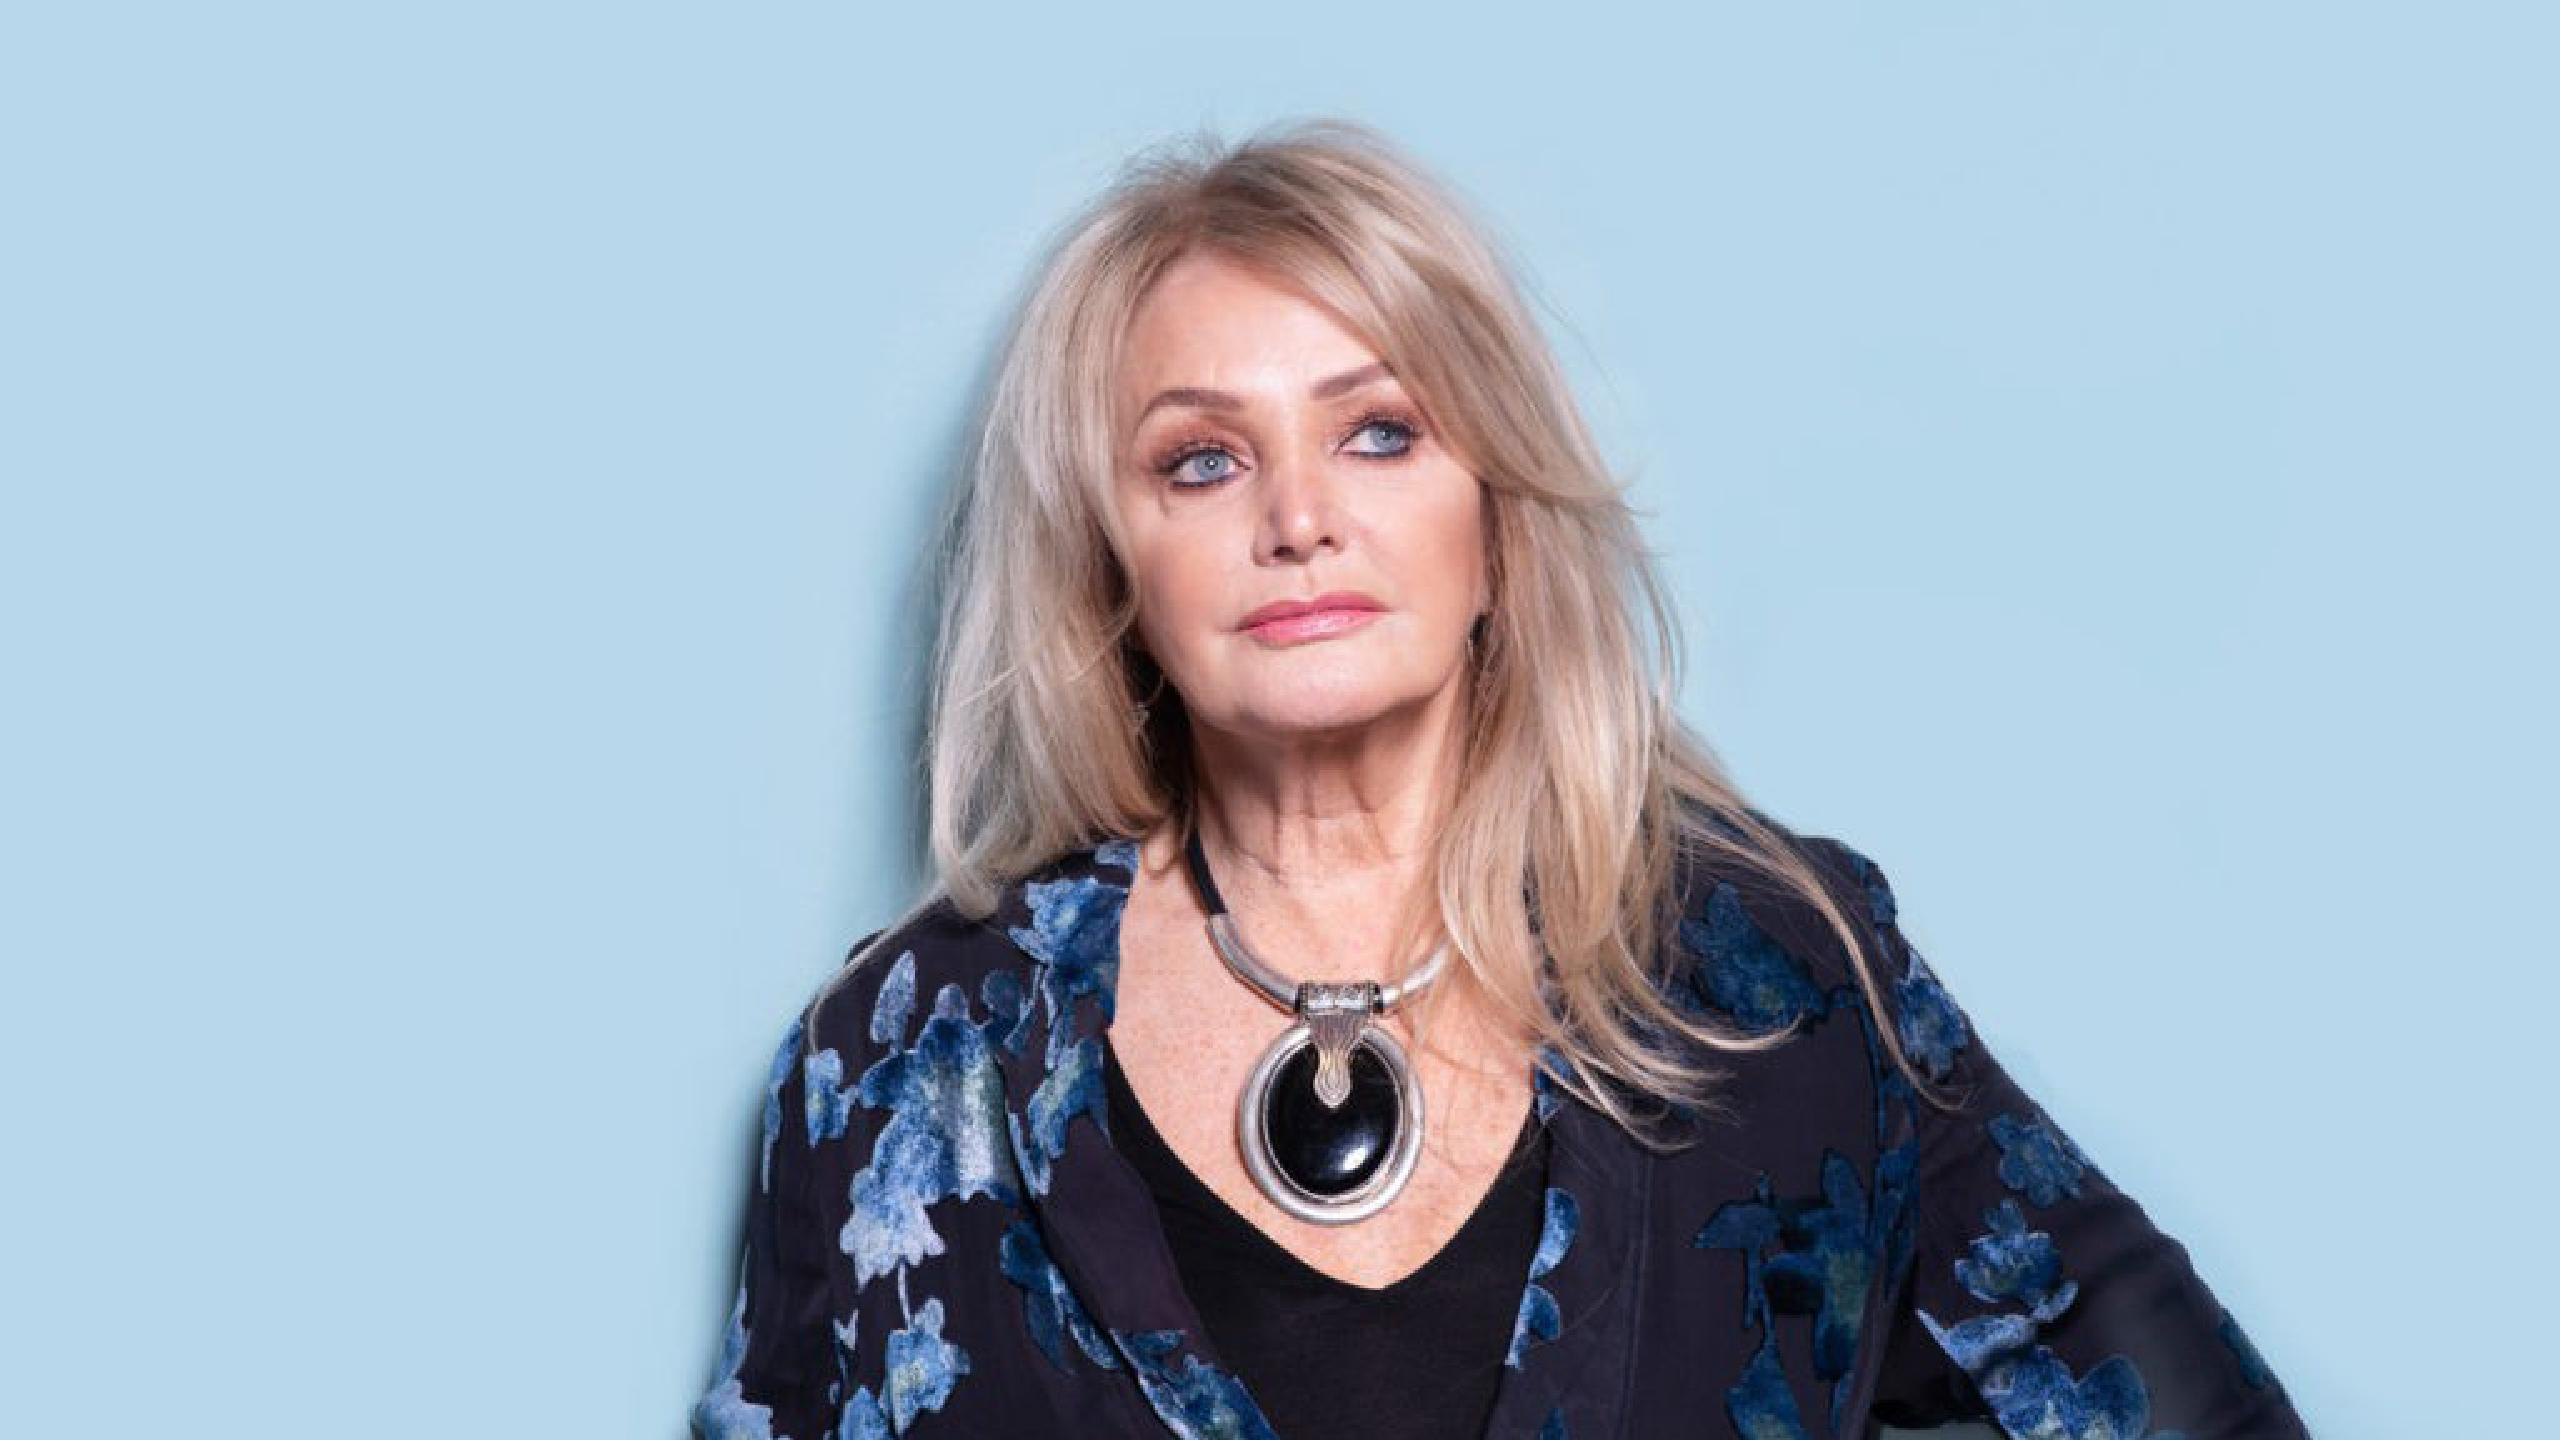 Bonnie Tyler learns to swim after falling from yacht